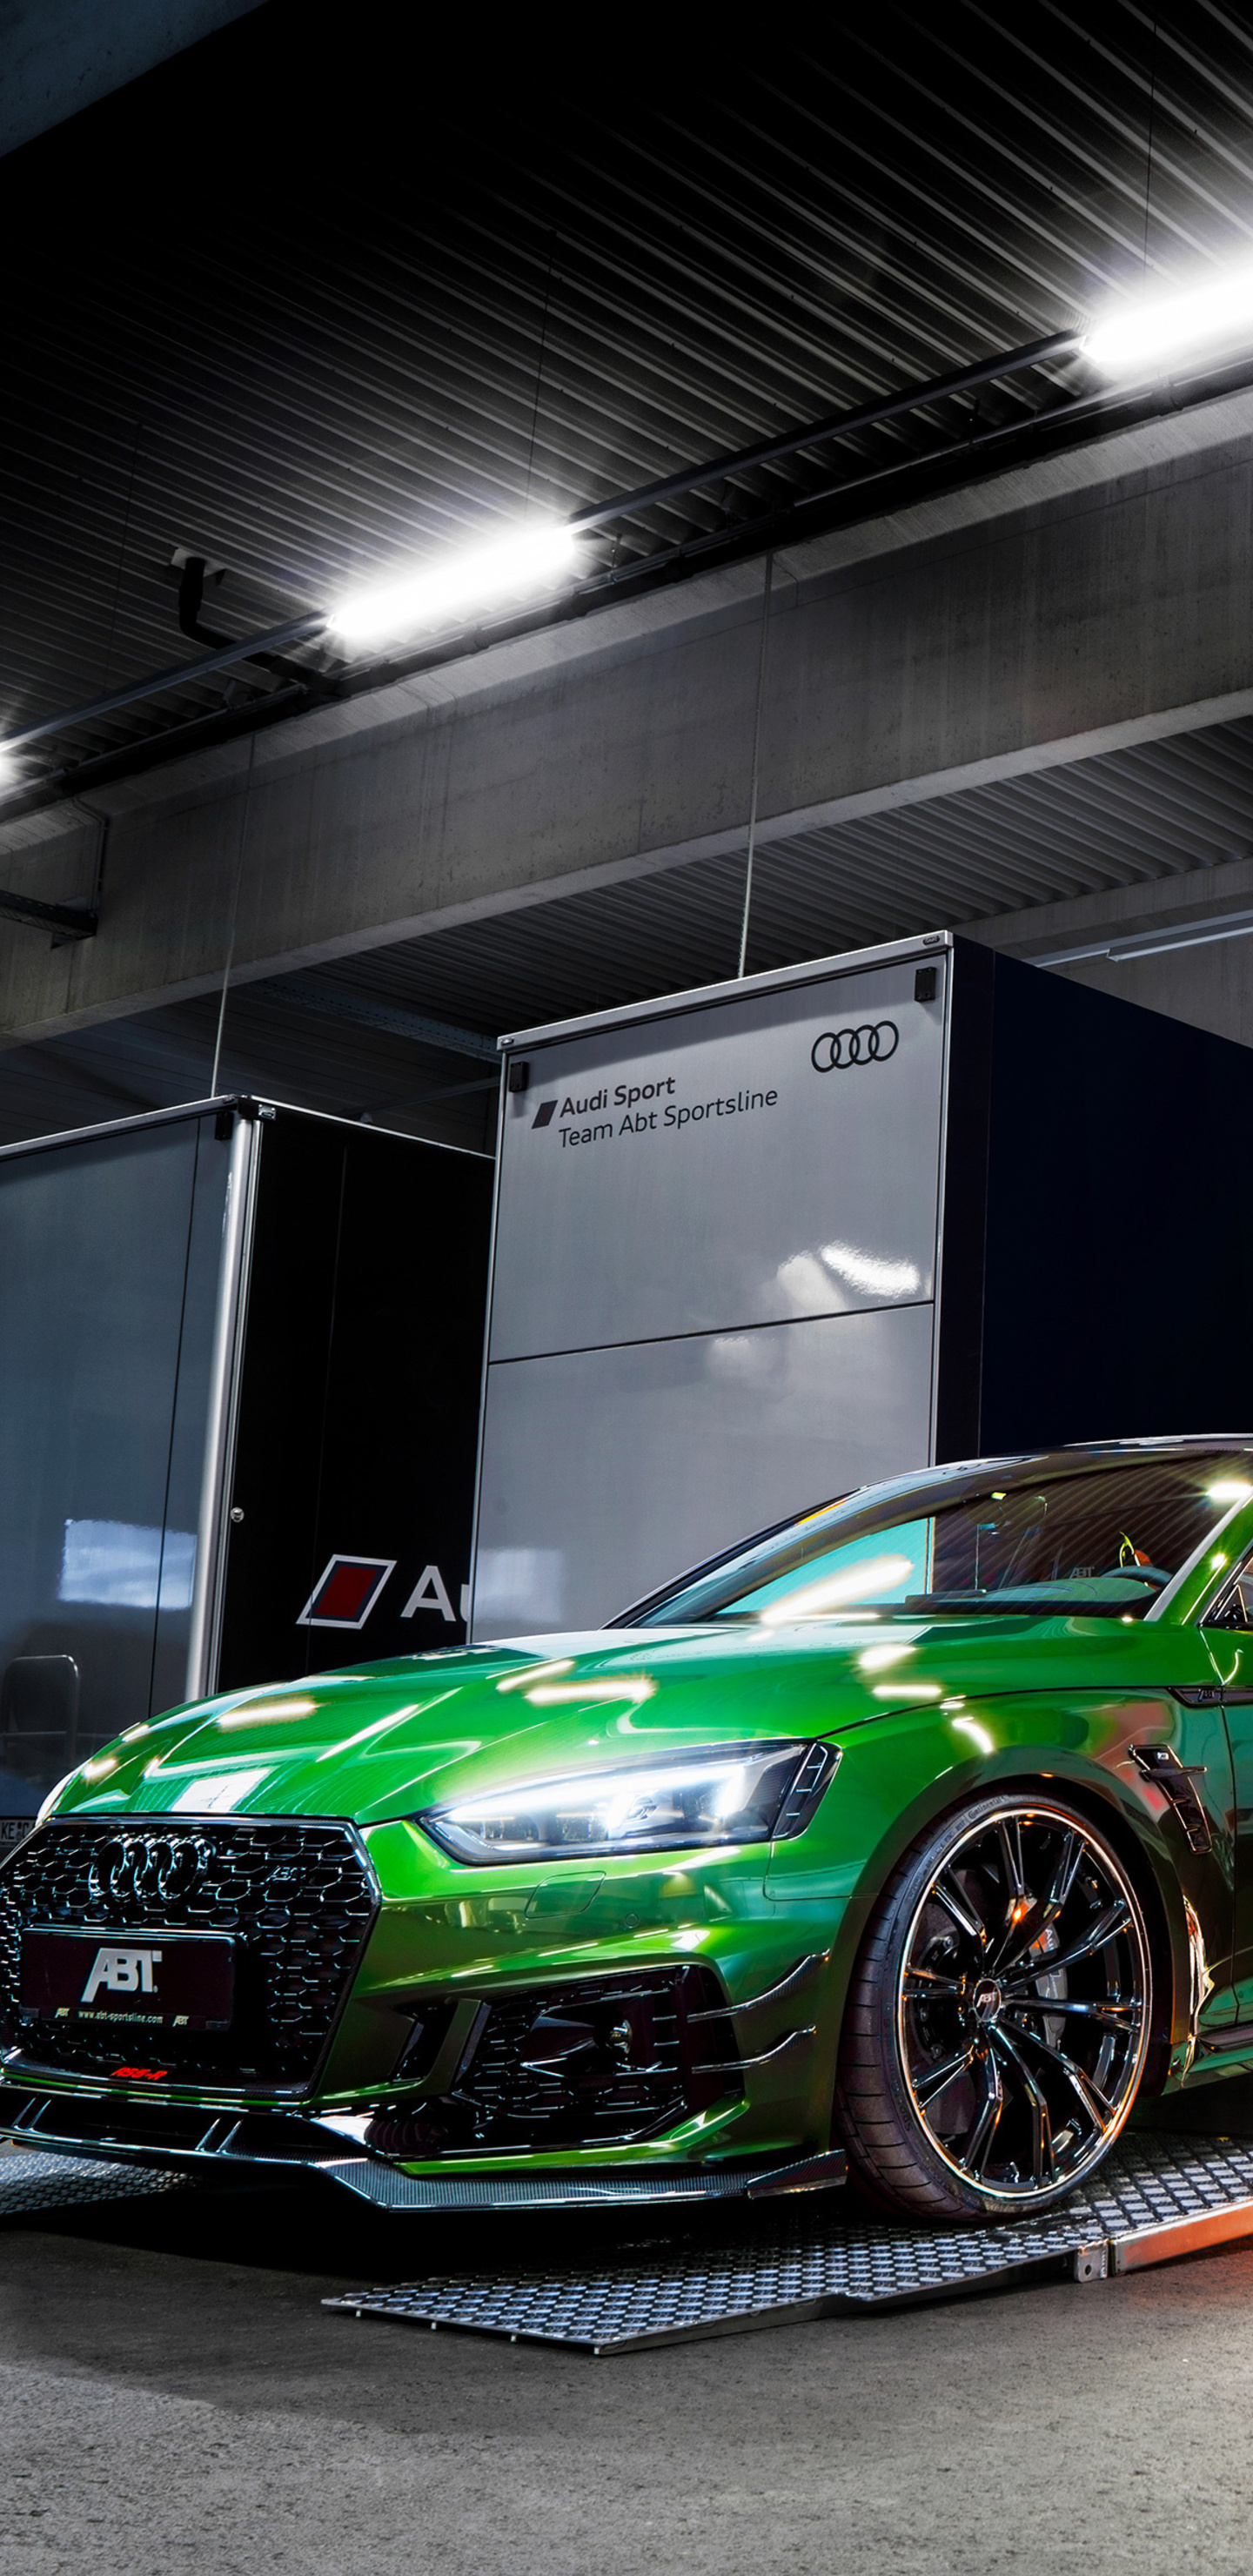 X Audi ABT RS R Coupe Samsung Galaxy Note SSS - Abt samsung